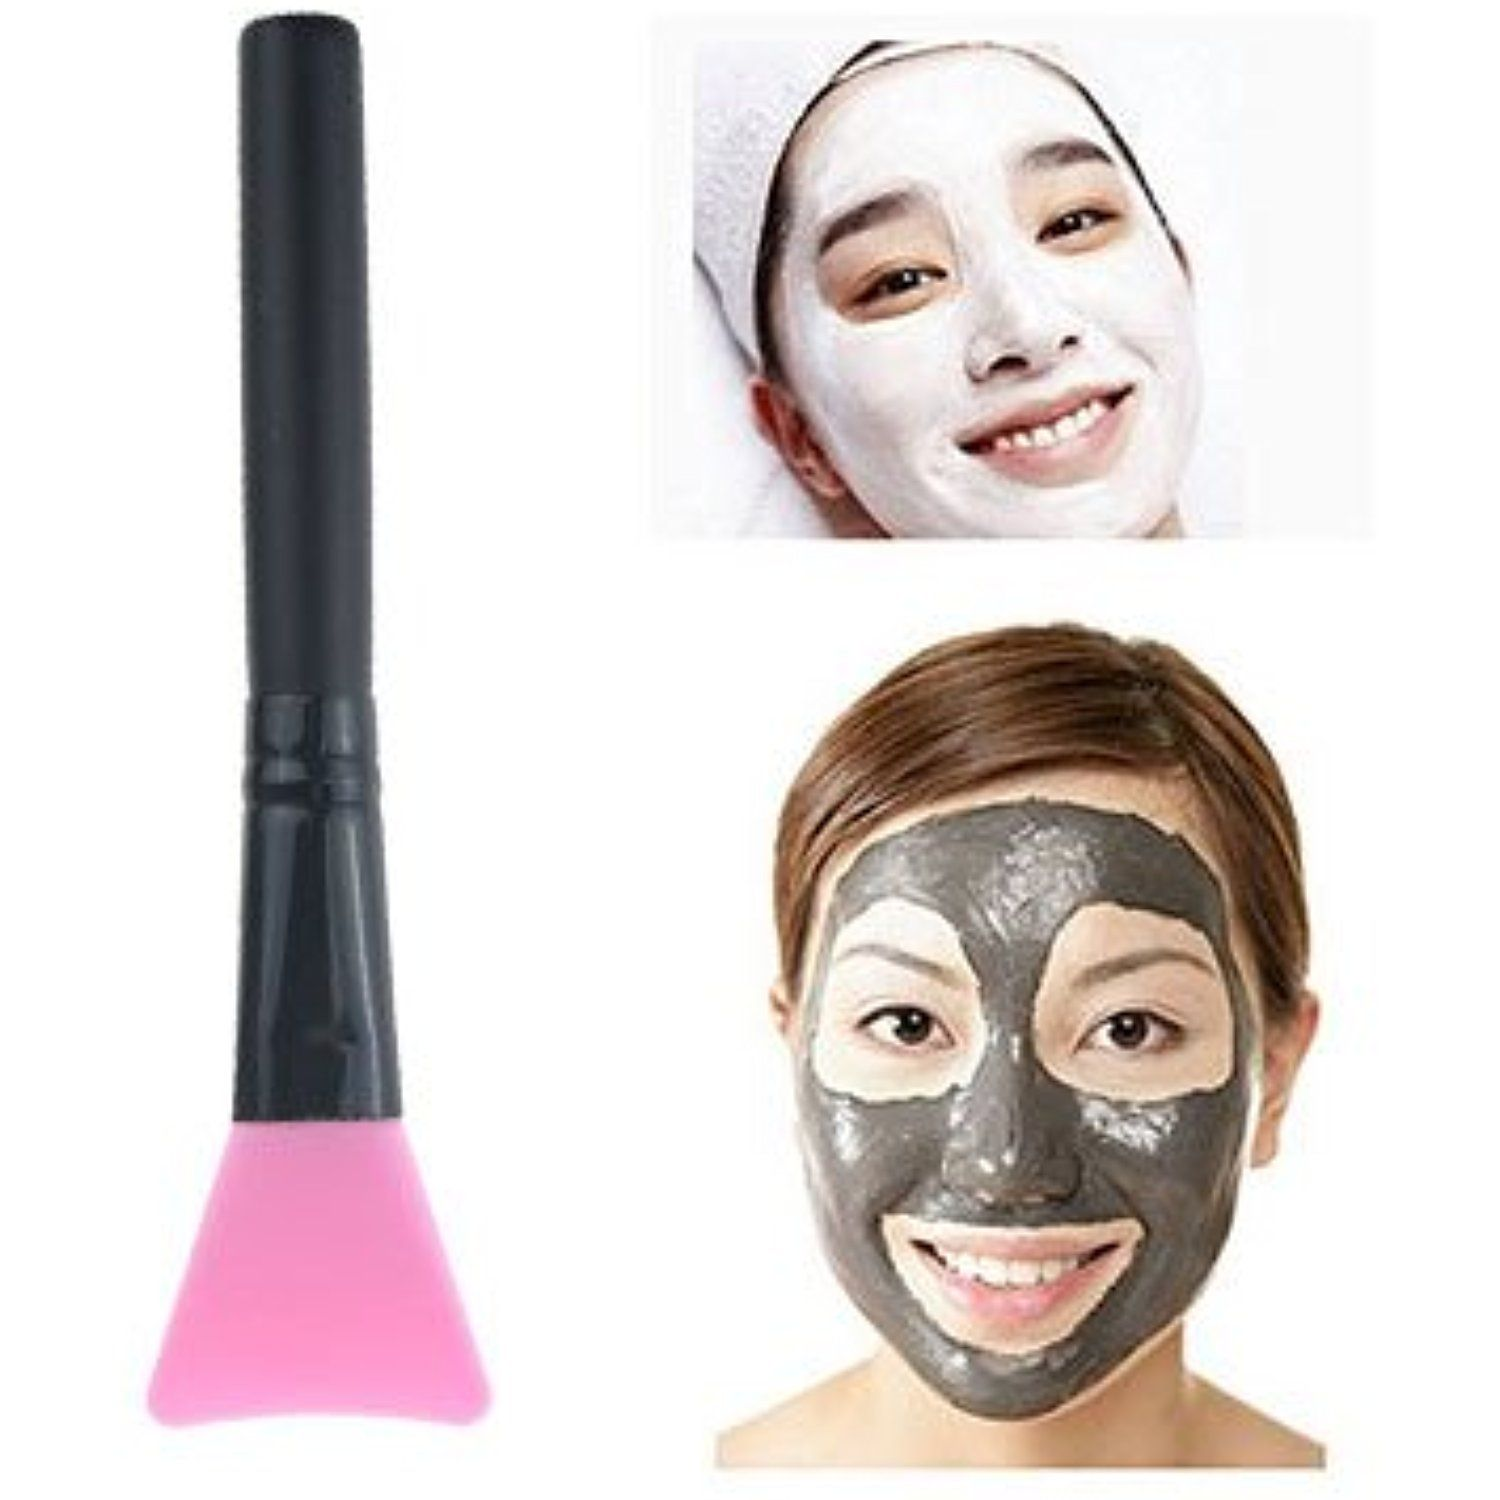 OR Pure Silicone Face Mask Brush,Facial Mask Applicator